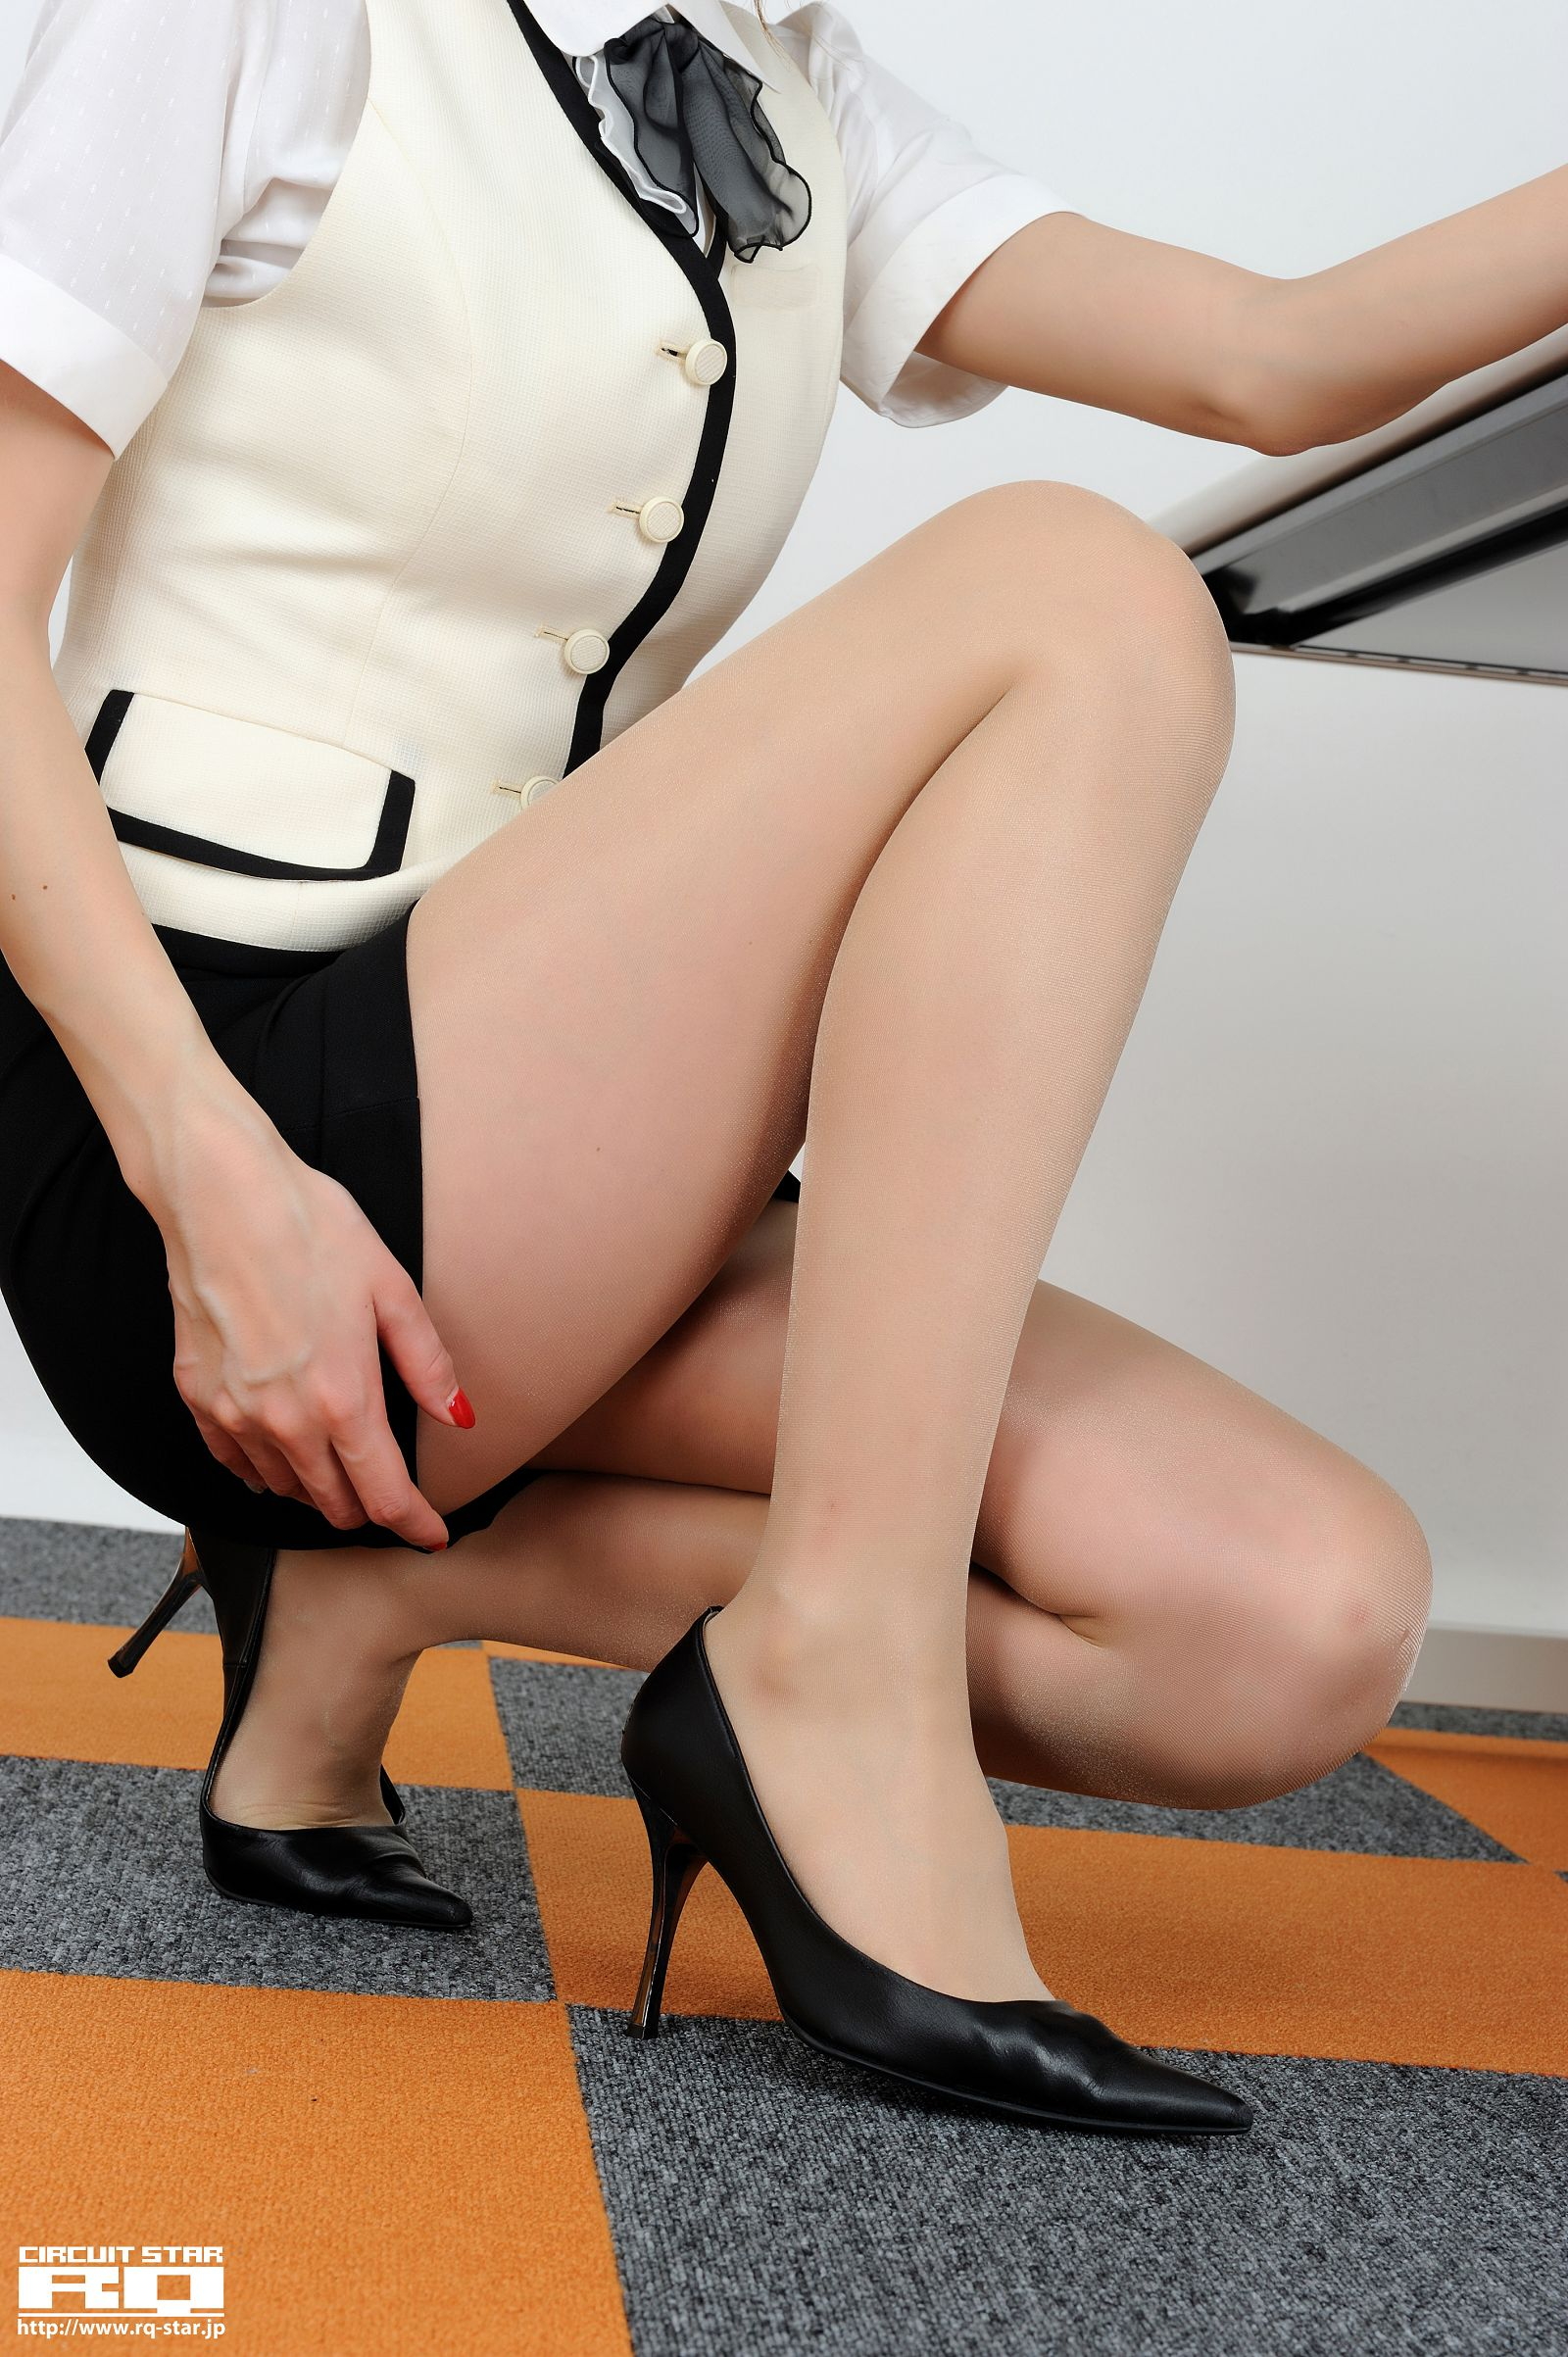 [RQ STAR美女] NO.00635 Maasa Maeda 前田真麻 Office Lady[120P] RQ STAR 第3张